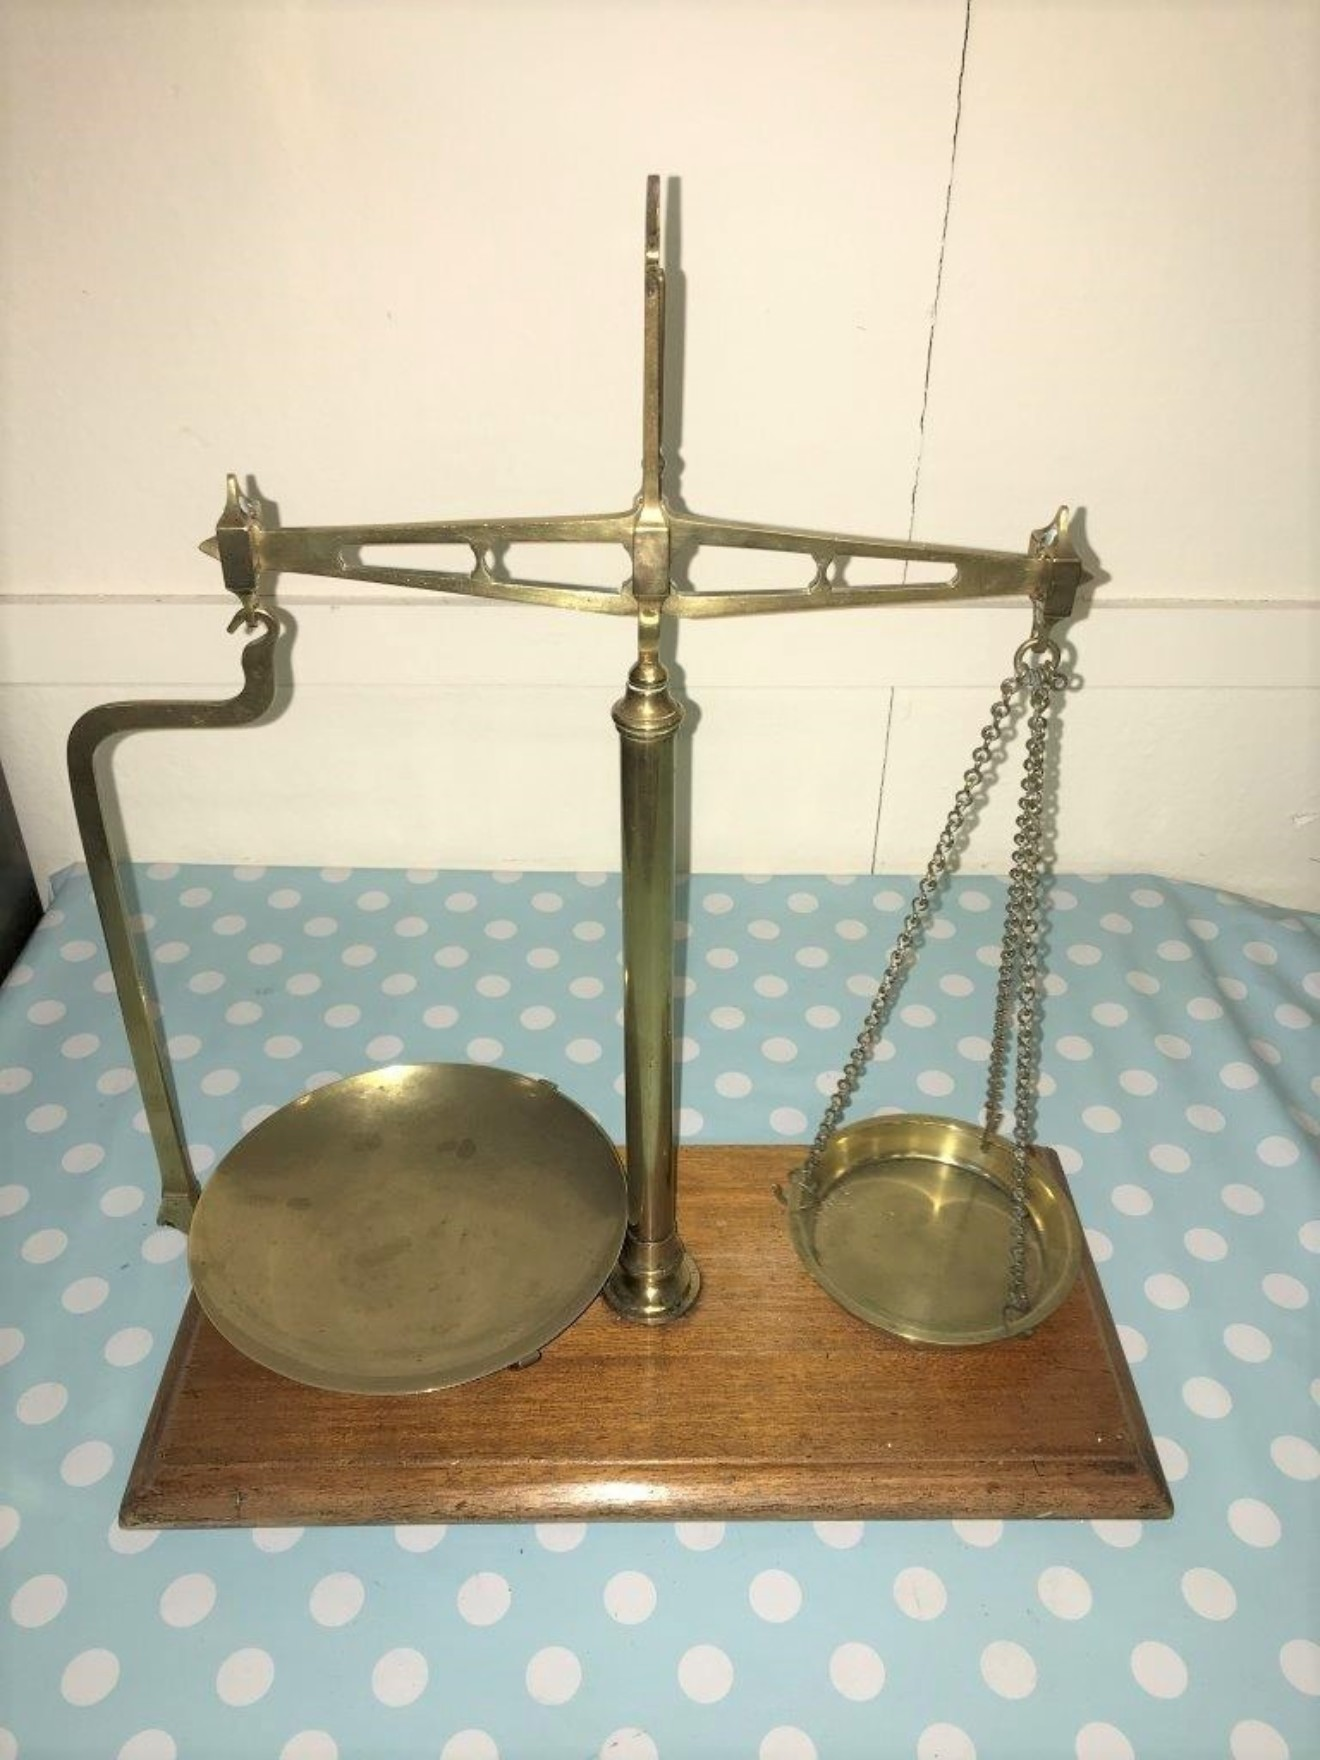 Set of Balance Scales